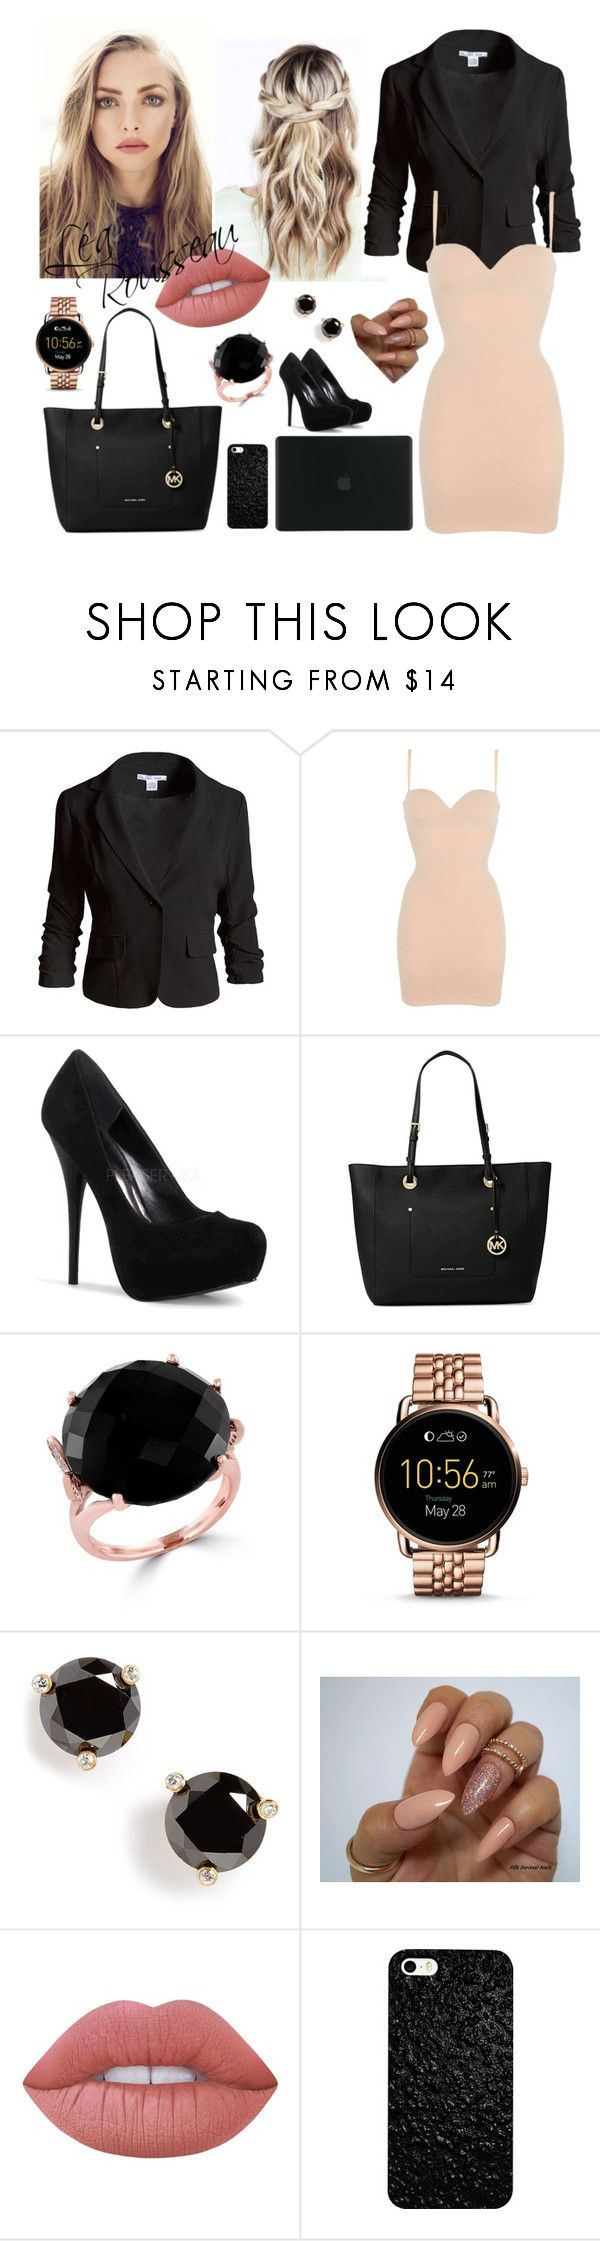 """""""léa"""" by fiax33 on Polyvore featuring Mode, Sans Souci, Wolford, Michael Kors, Effy Jewelry, FOSSIL, Kate Spade, Lime Crime und Tucano"""